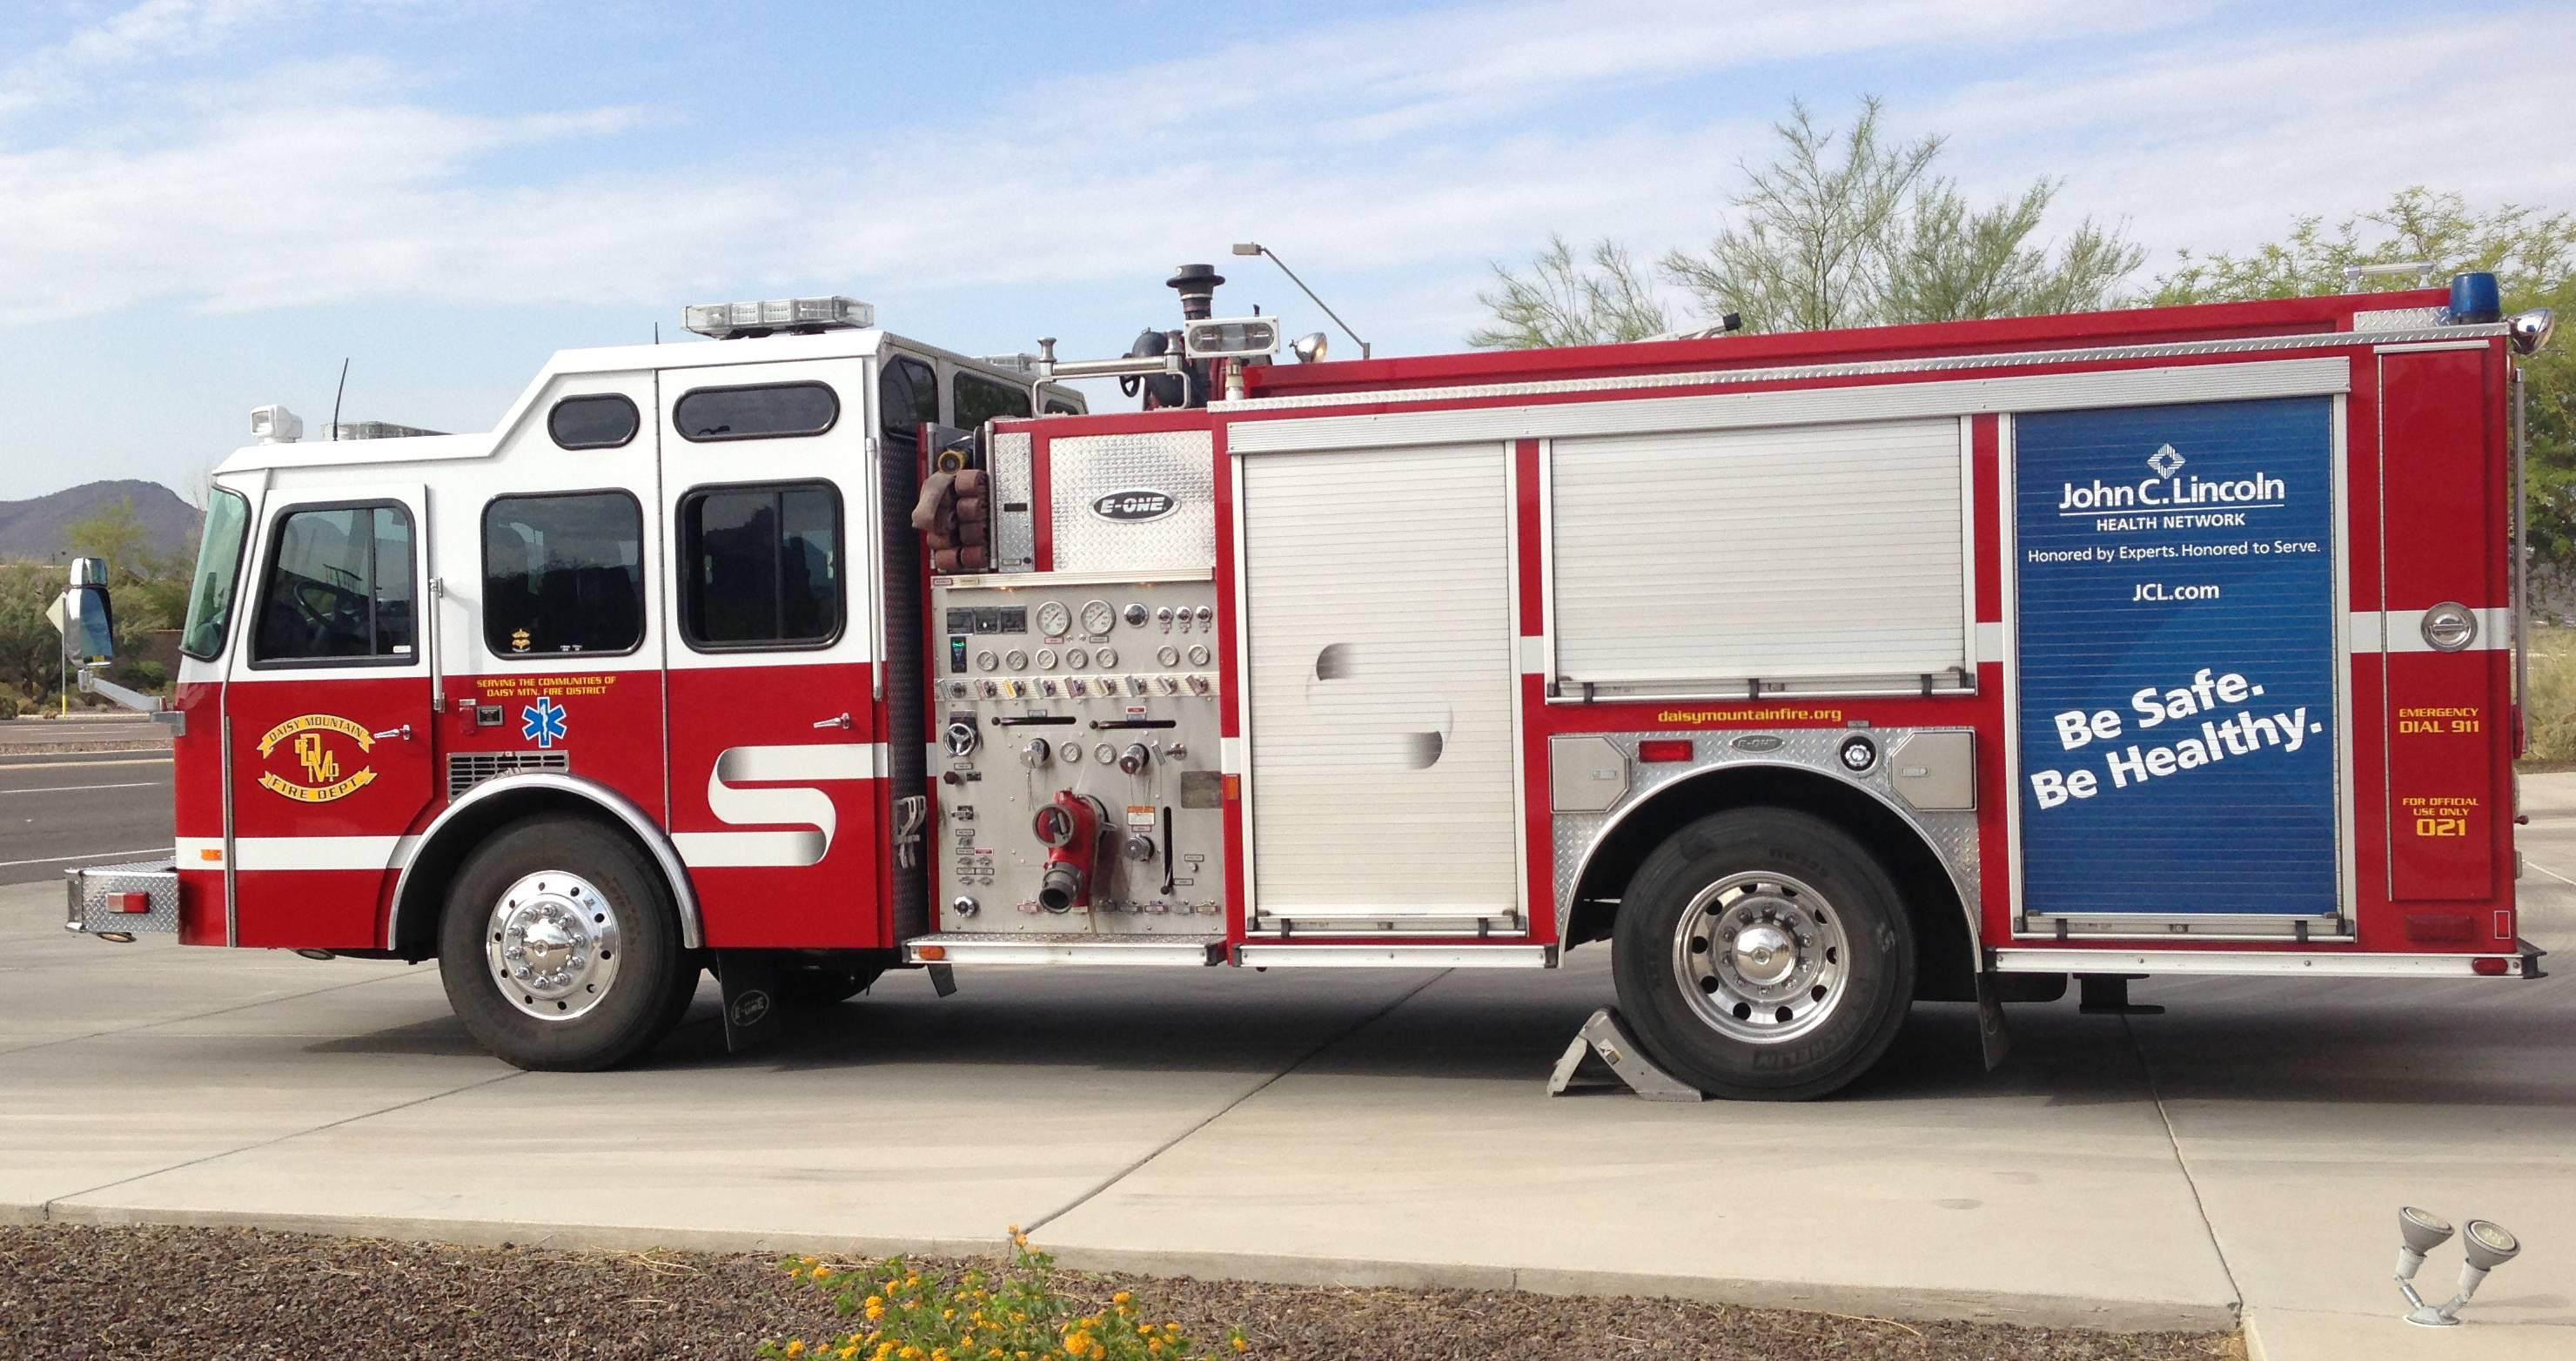 An Arizona fire truck bears an advertisement placed on the truck in the same place that new ads will be placed on the fire truck from the Palatine Rural Fire Protection District.